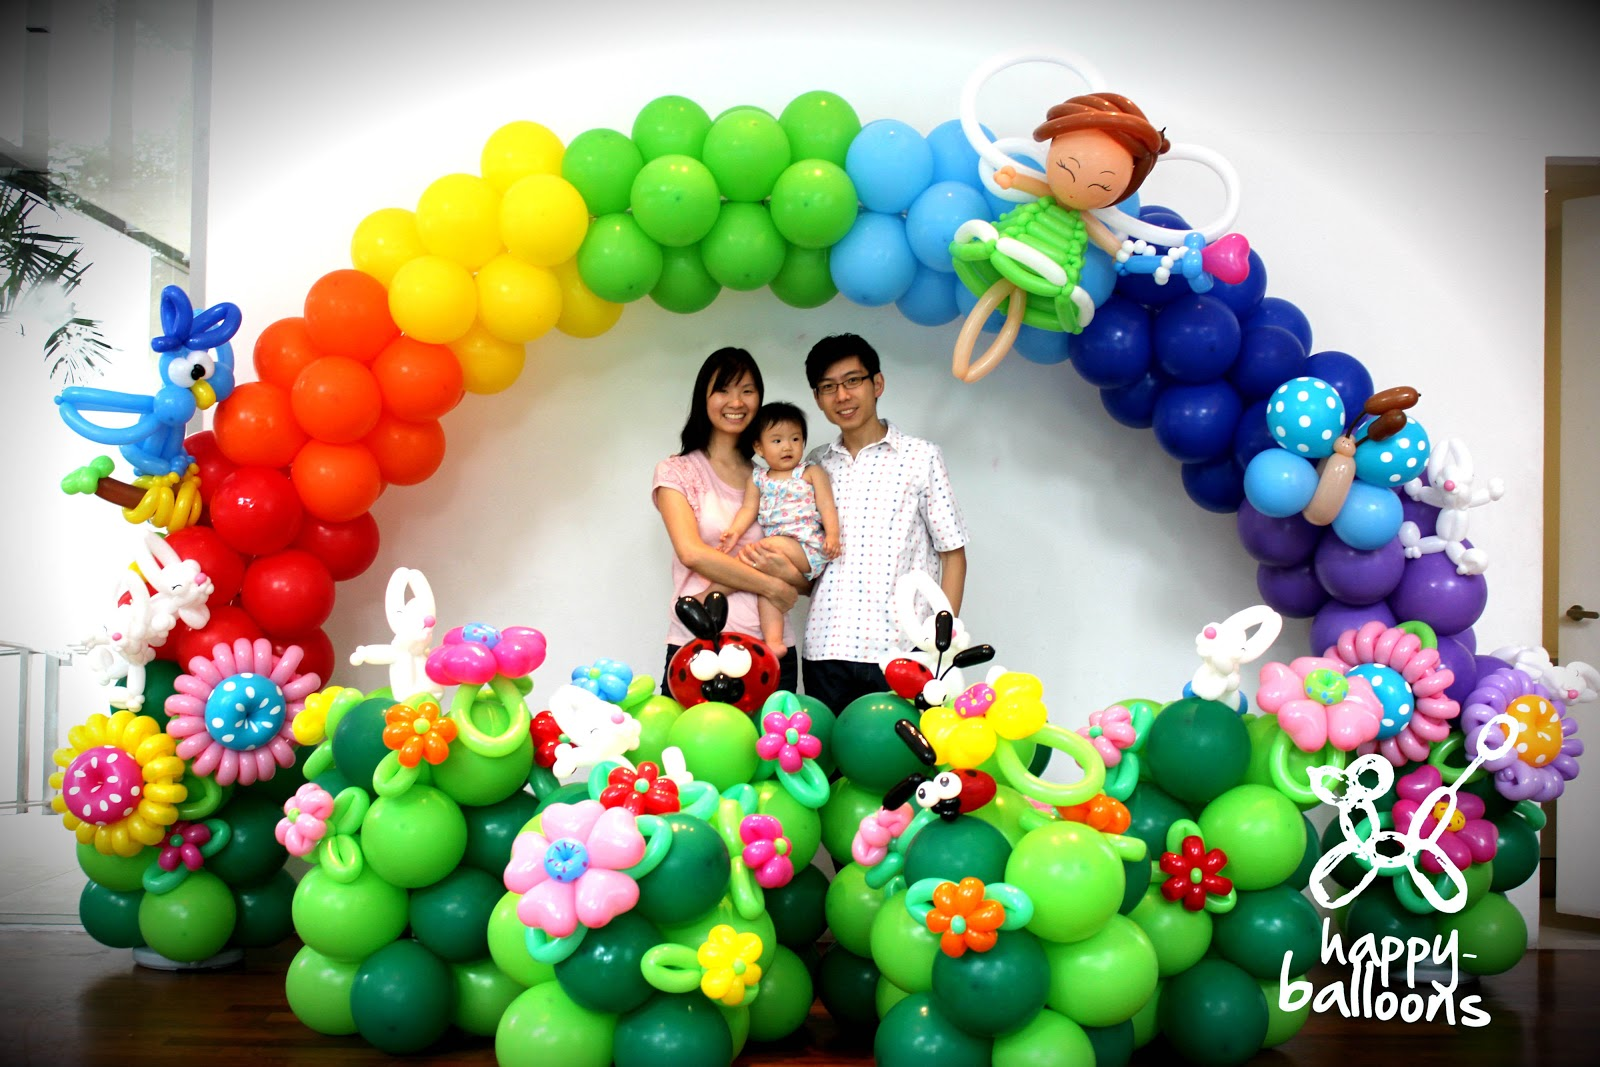 Happy Balloons | Balloon Sculpting for parties and events!: Garden ...